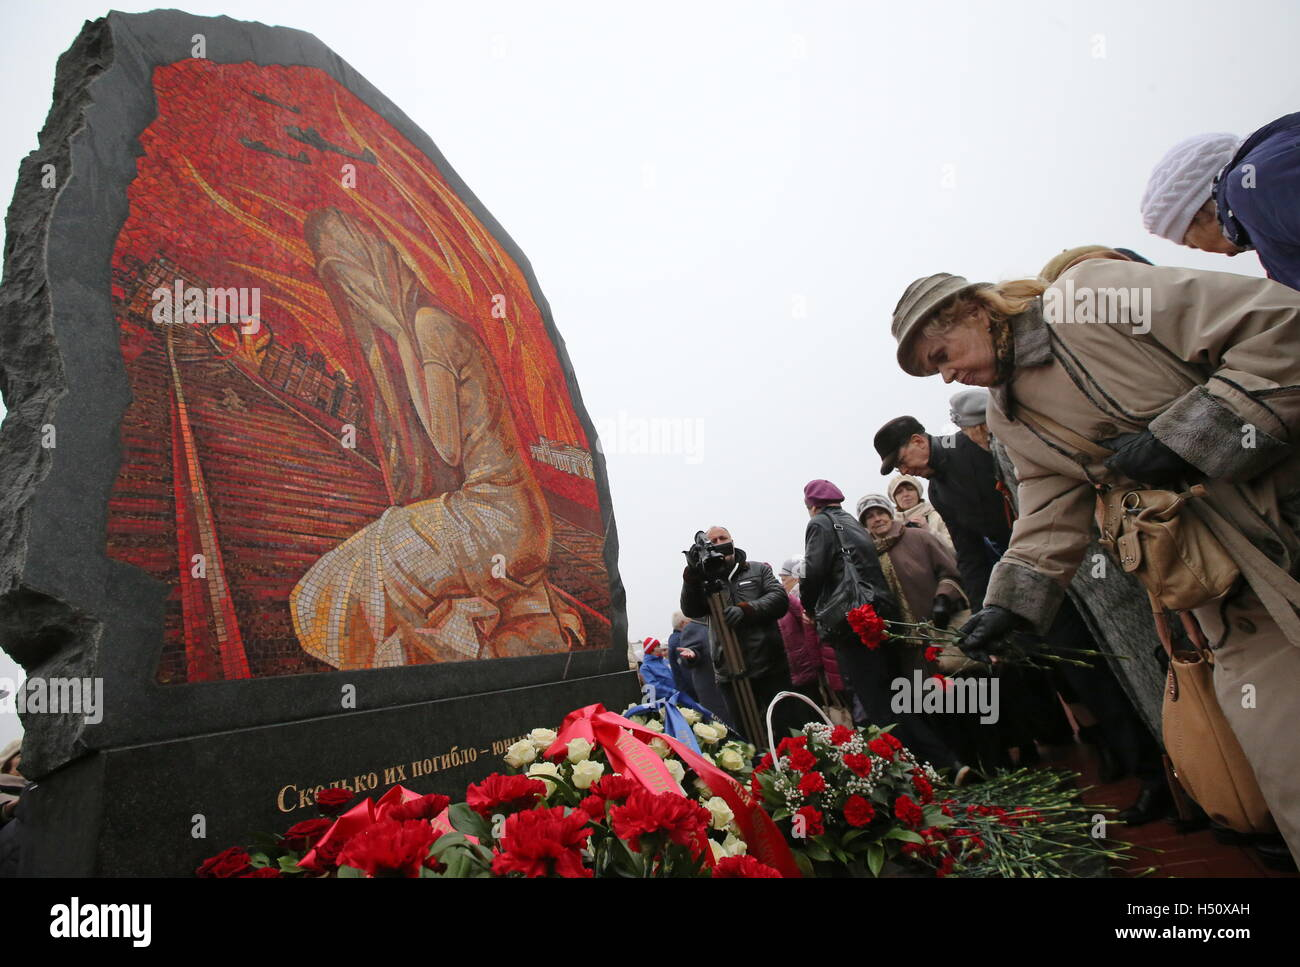 TIKHVIN, LENINGRAD REGION, RUSSIA - OCTOBER 14, 2016: Residents lay flowers at a war memorial unveiled to mark the - Stock Image